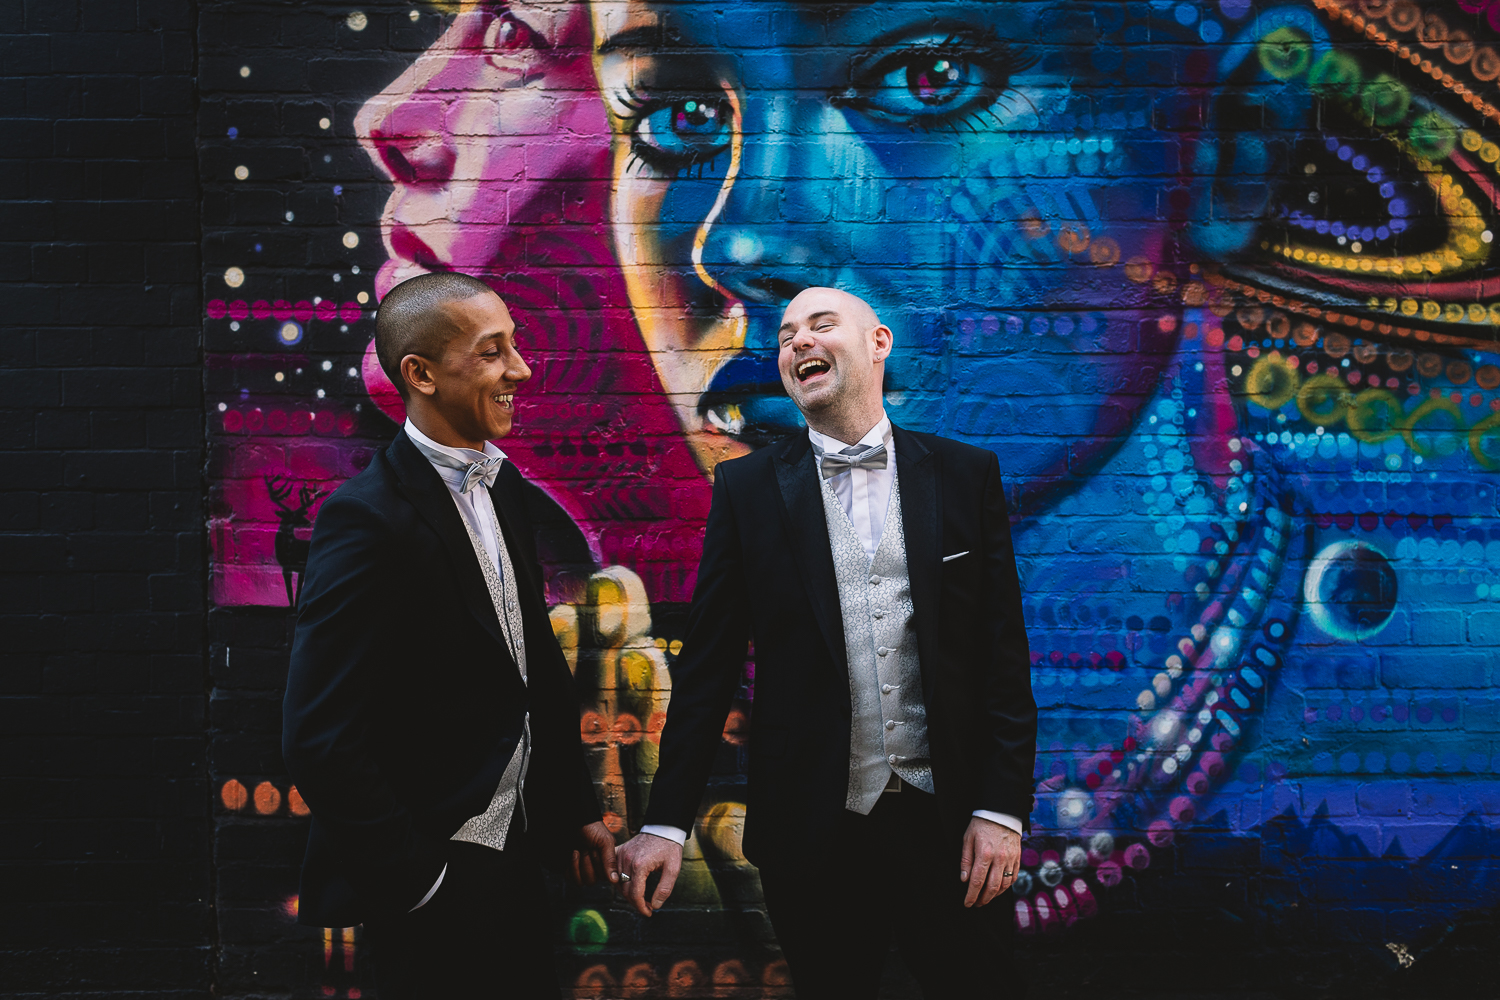 Photo of fun same sex wedding at the Bond Company in Digbeth. Two grooms in matching tuxes are holding hands and laughing in front of alternative colourful graffiti wall at the Custard Factory